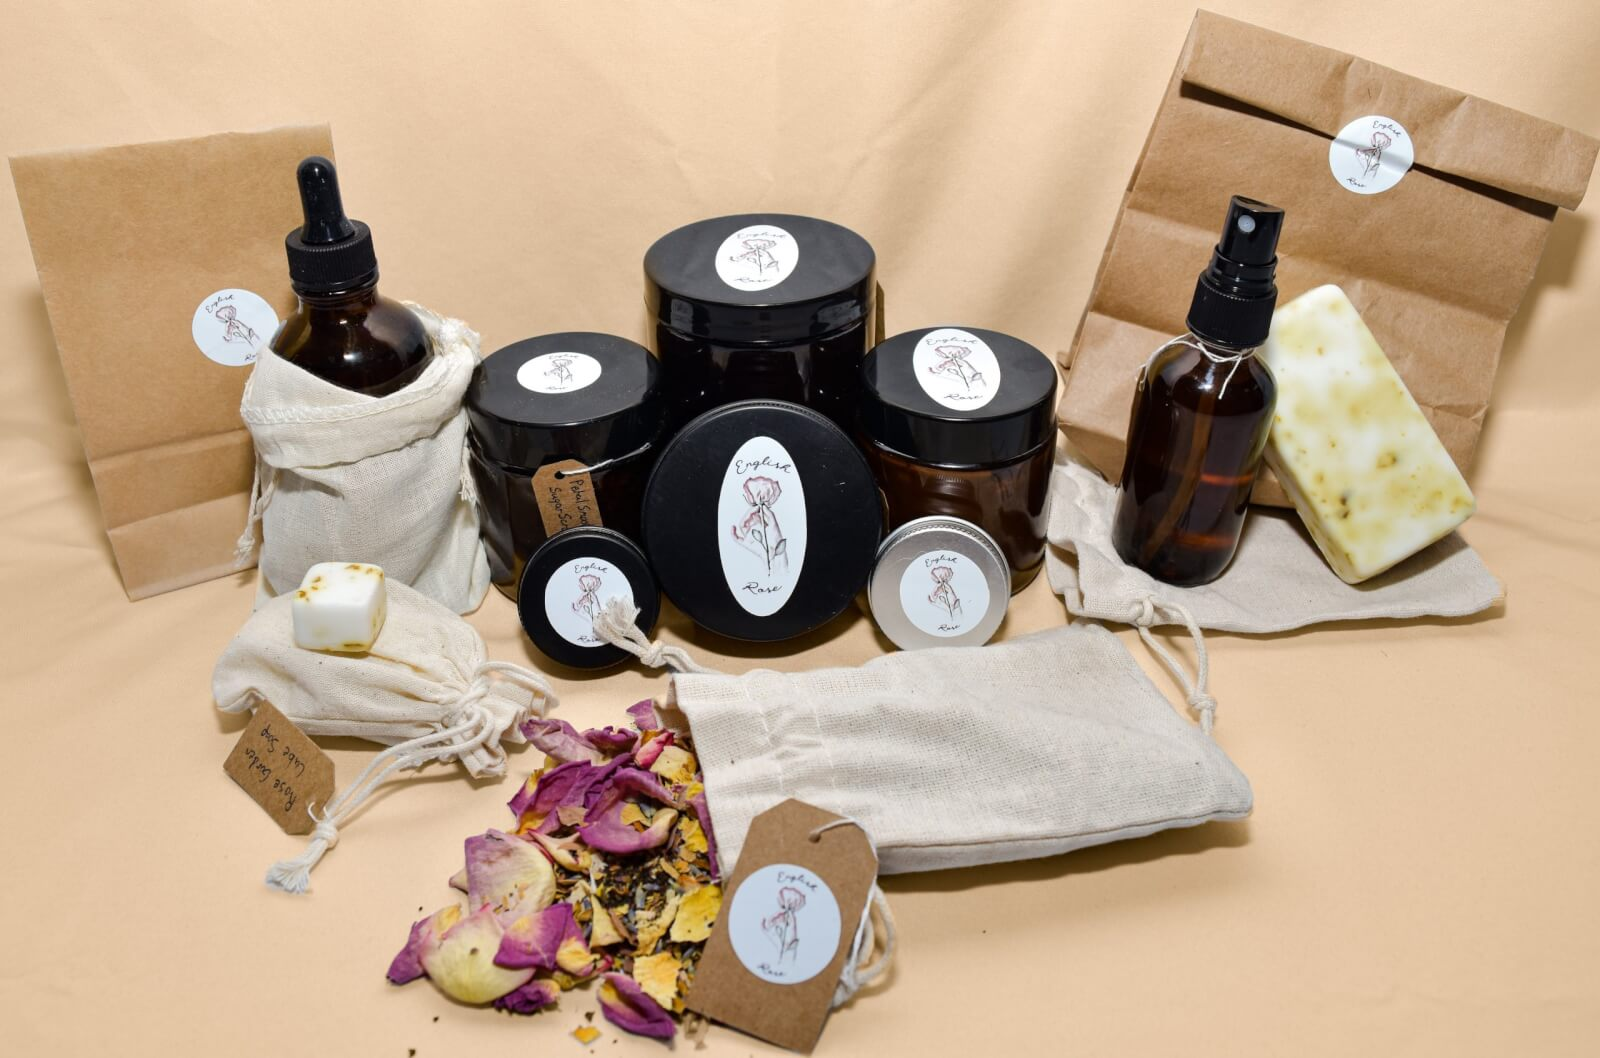 A collection of English Rose skincare products, including jars, tins, spray bottles, bar soap and linen bags with potpourri